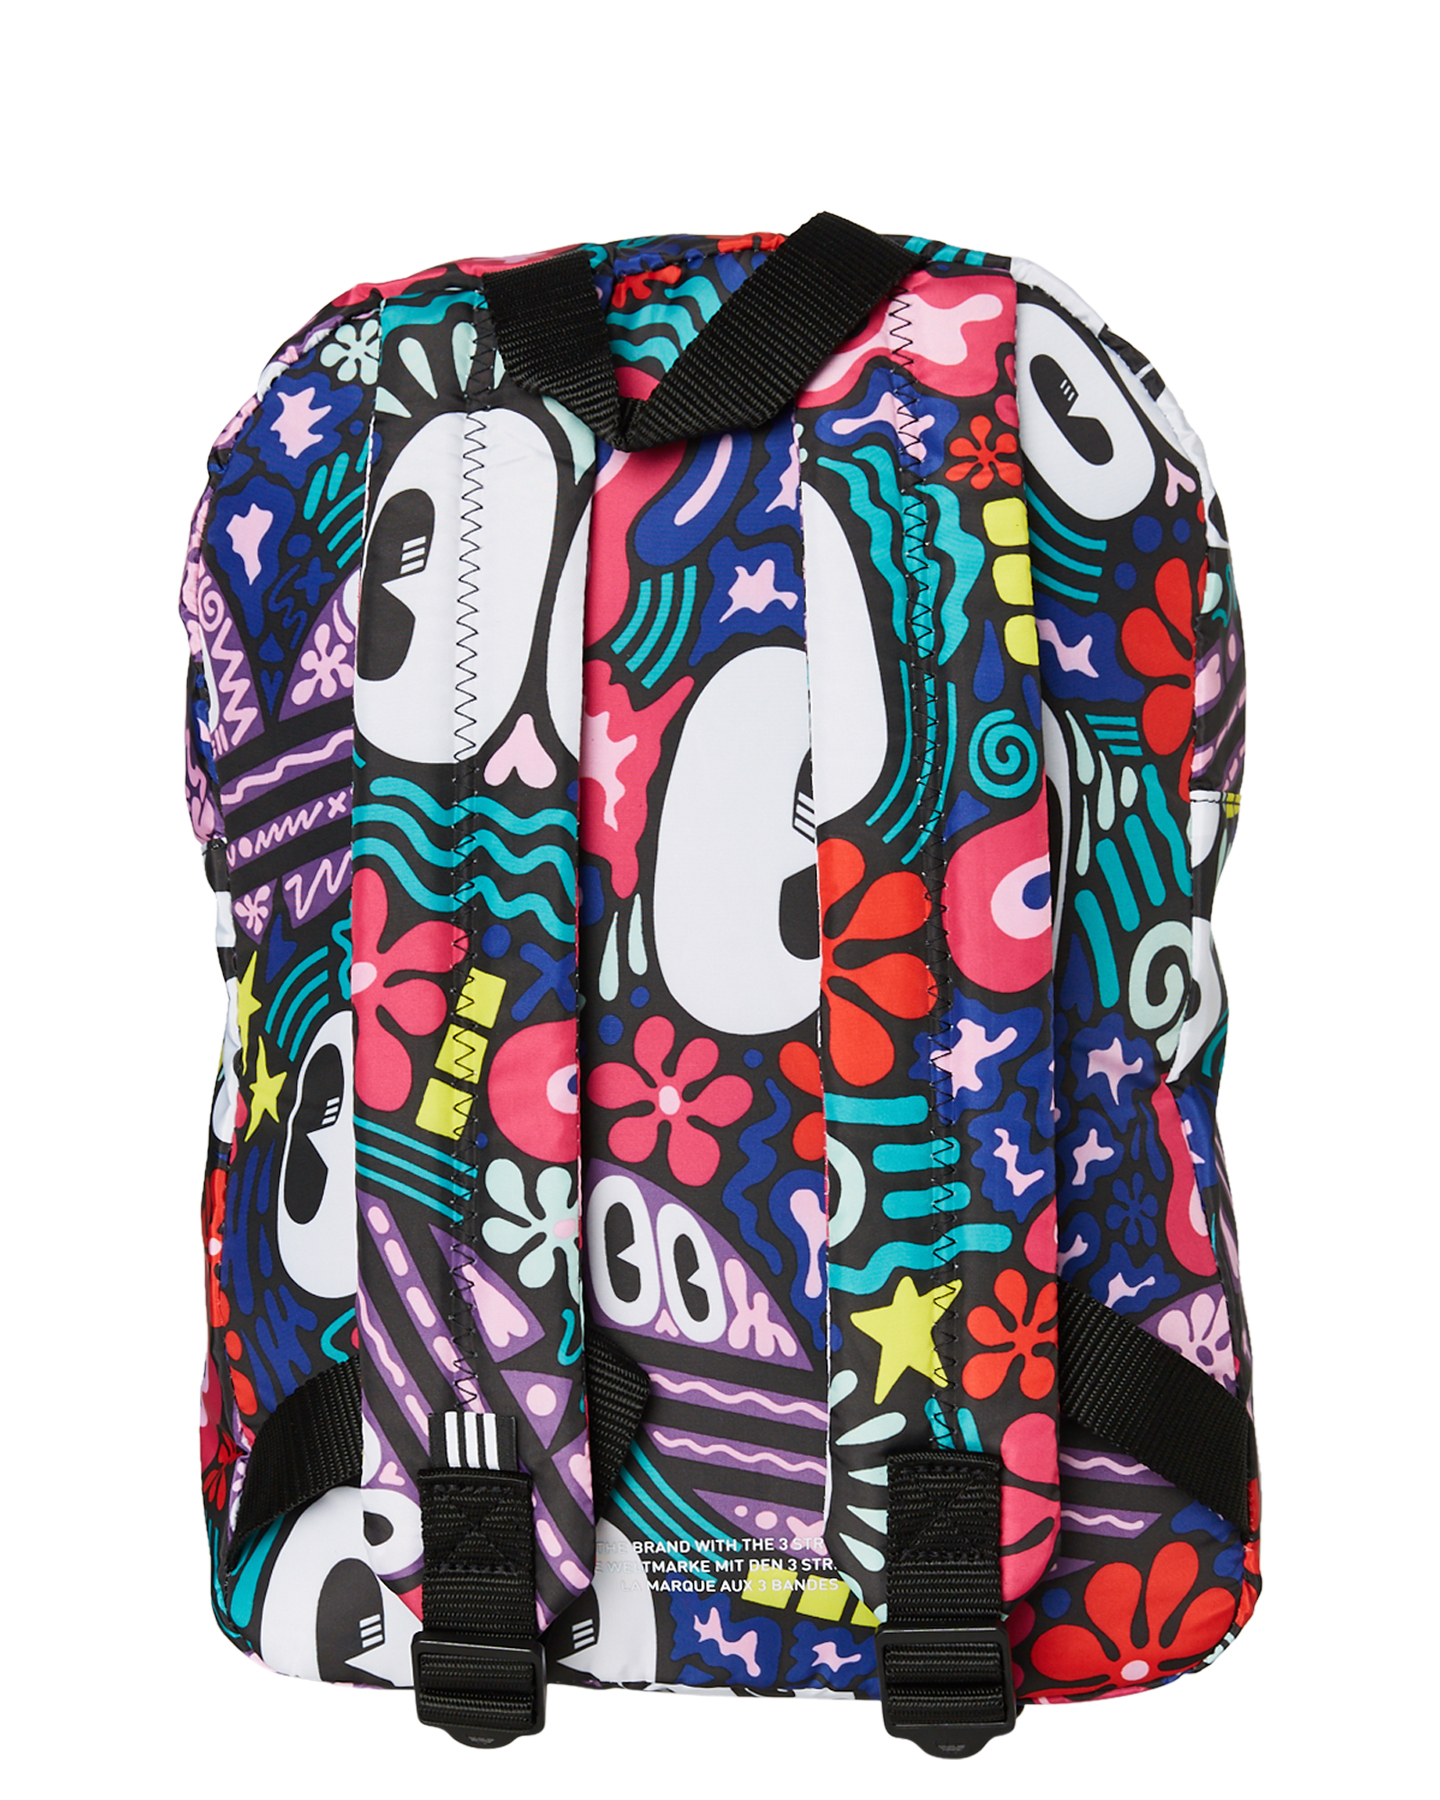 03d64ccad0 ... MULTICOLOR WHITE KIDS GIRLS ADIDAS BAGS + BACKPACKS - DW6719MUL ...